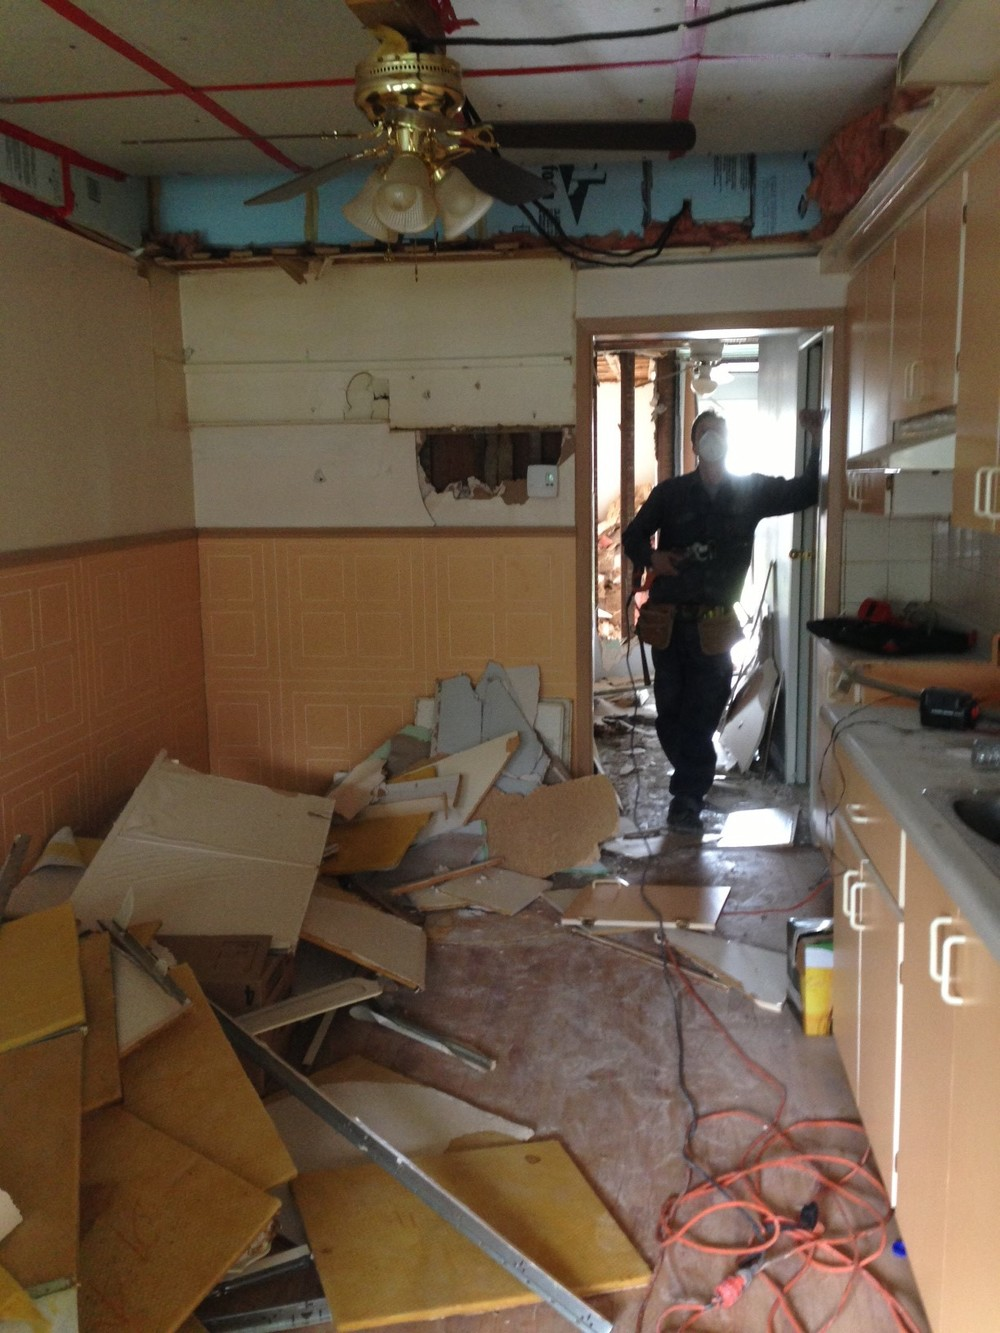 Kitchen being dismantled